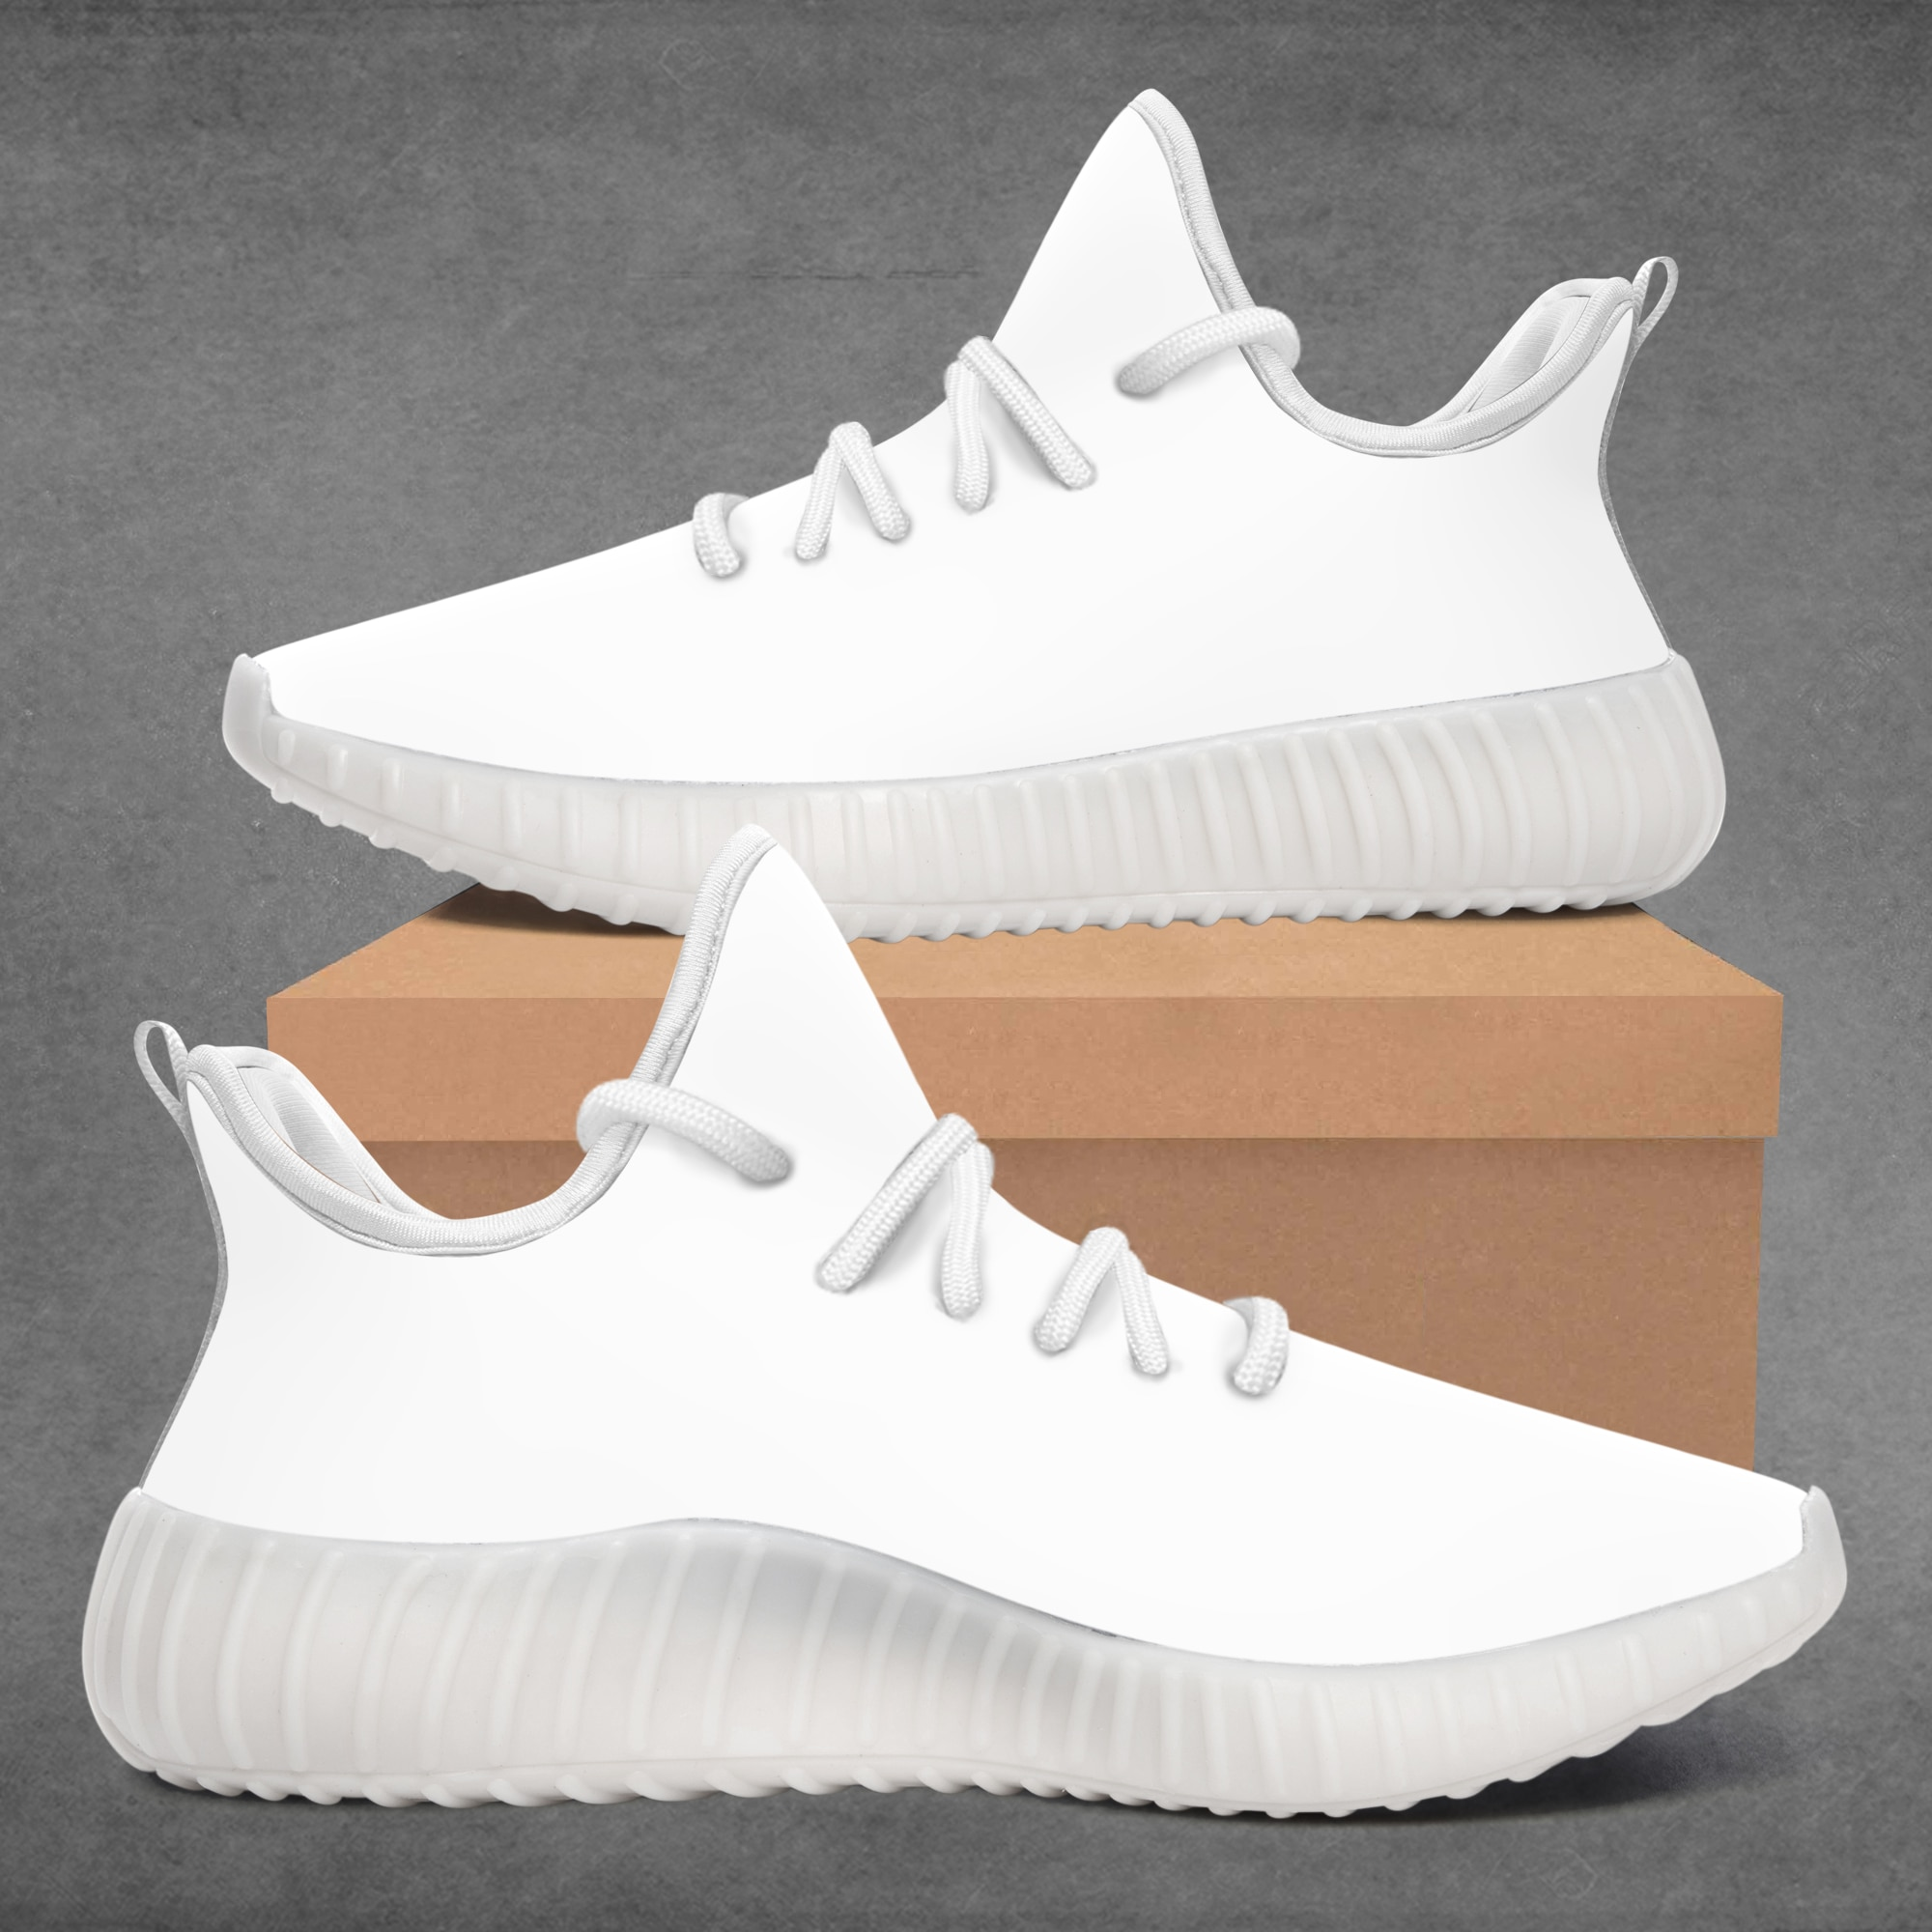 Custom Men Women Theme Pattern Trainers INS Trendy Shoes Popular High Quality Lightweight Casual Sneakers